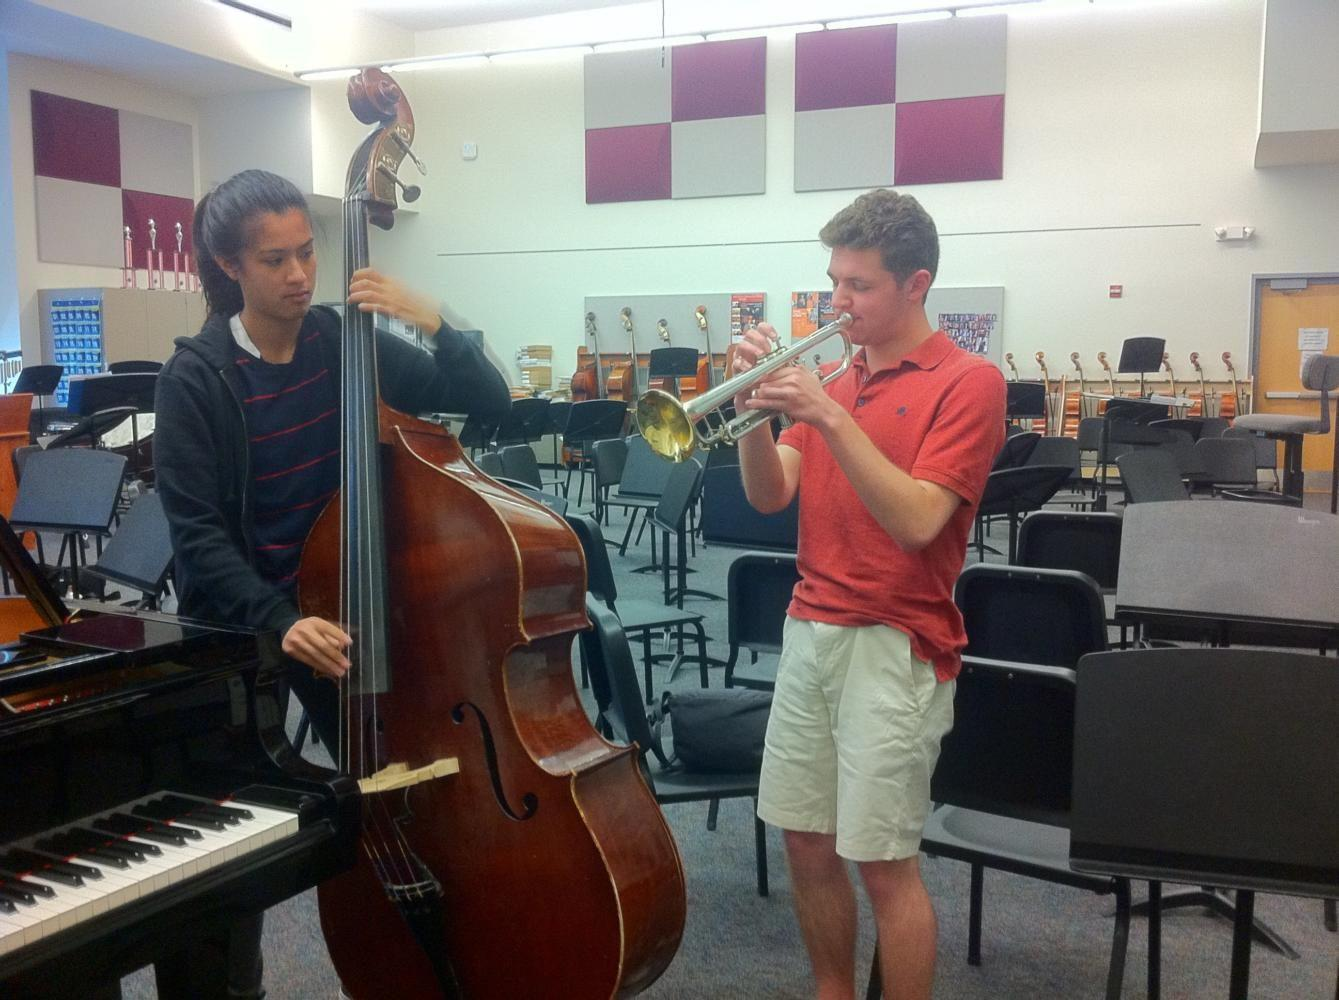 James+Dunning%2C+a+senior%2C+and+Jayla+Chee%2C+a+sophomore%2C+are+practicing+hard+for+the+upcoming+Spring+Concert.+They+will+be+playing+in+the+Jazz+Ensemble+on+Friday.+